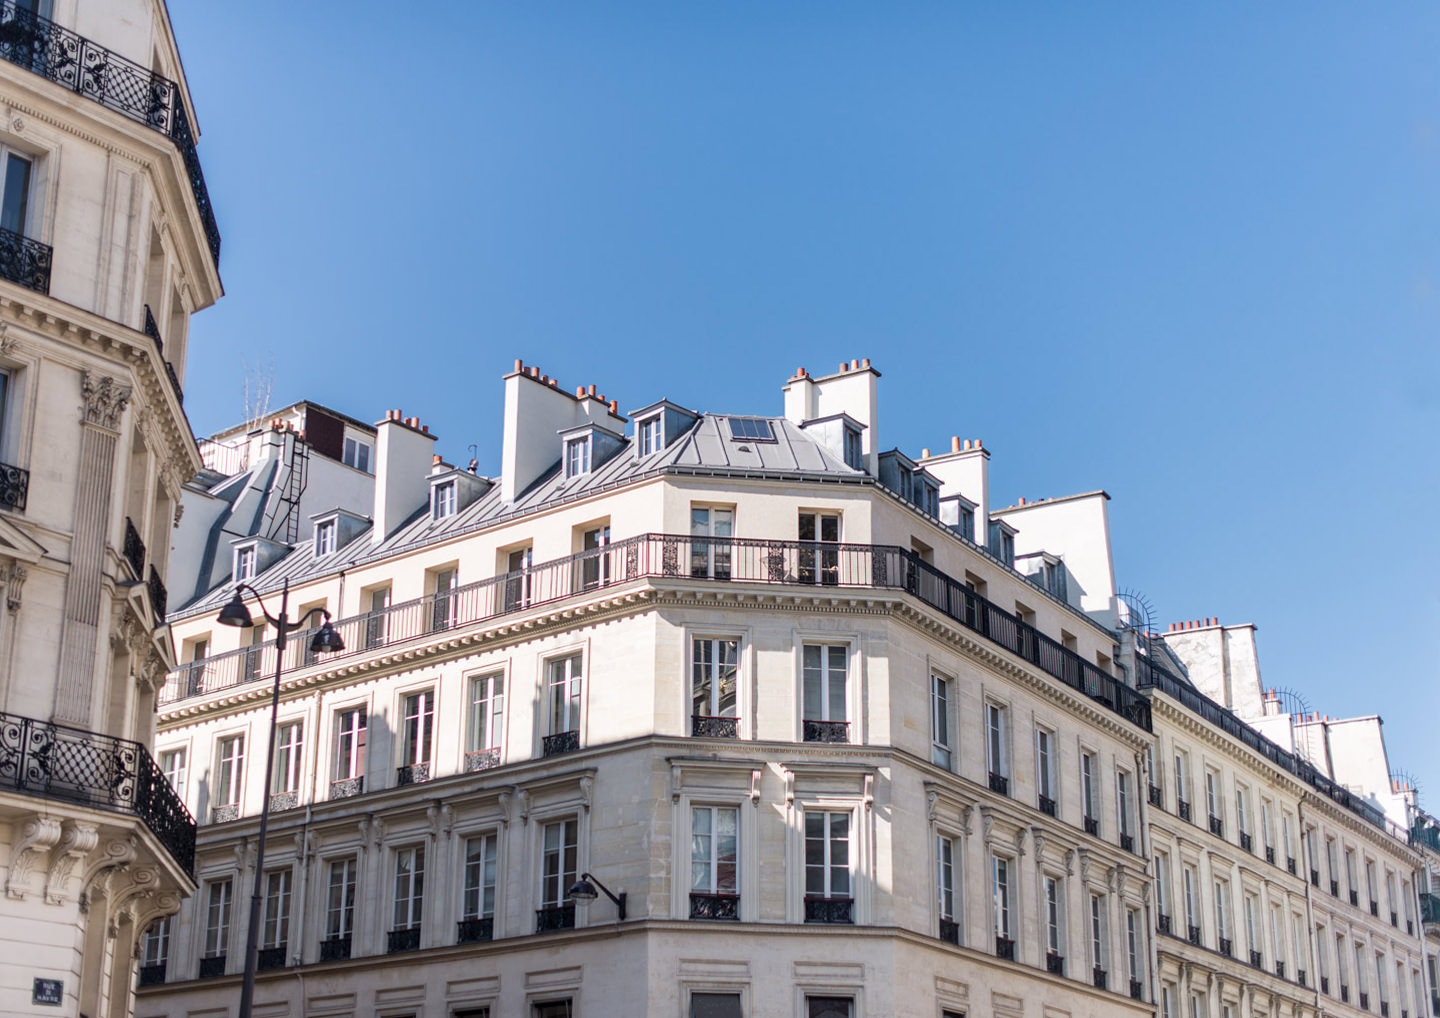 Blog-Mode-And-The-City-Lifestyle-Cinq-Petites-Choses-170-Paris